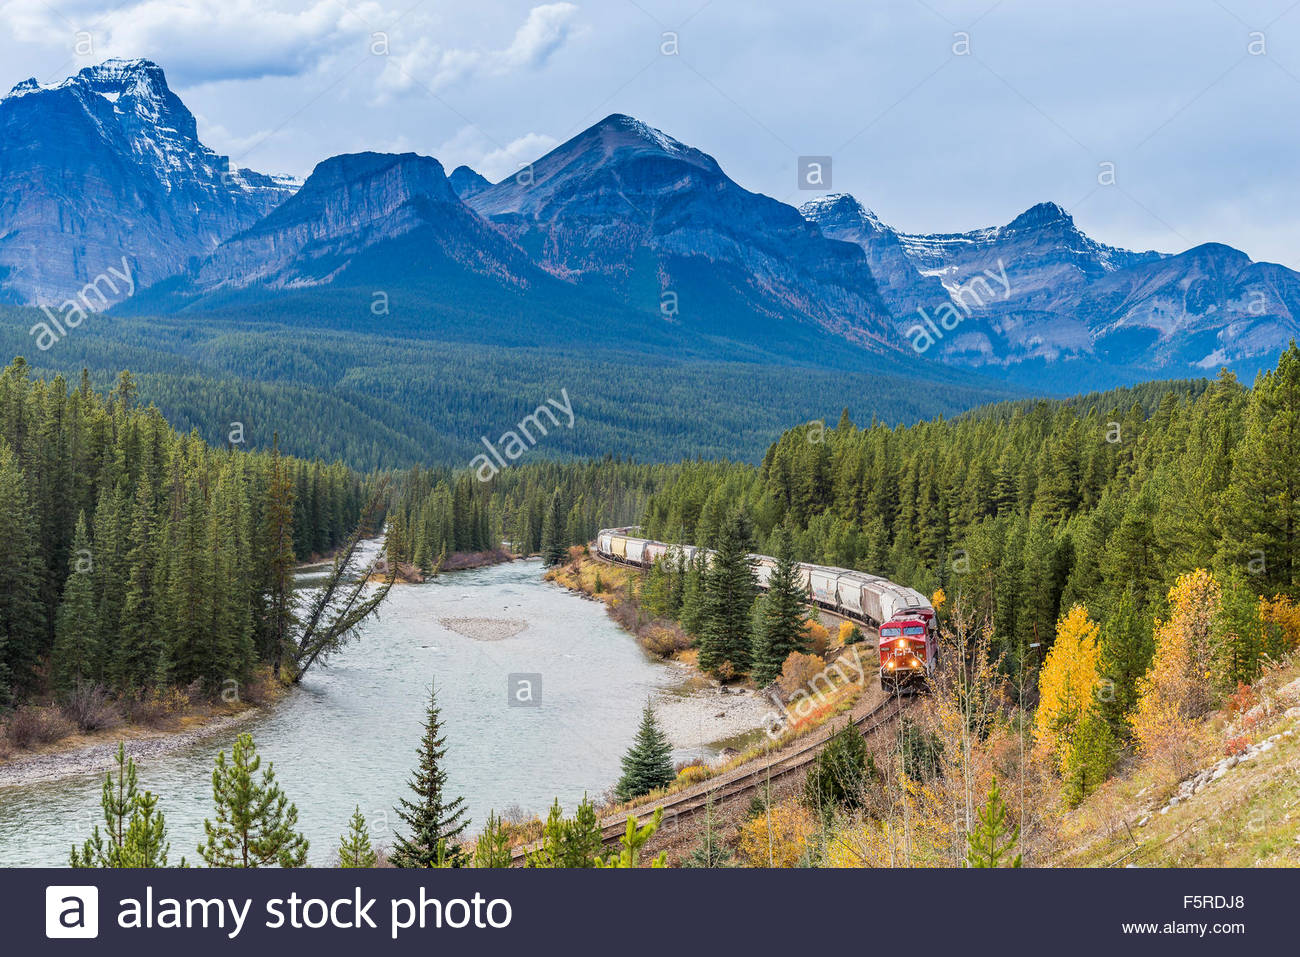 Freight train at Morant's curve, Banff National Park, Alberta, Canada - Stock Image